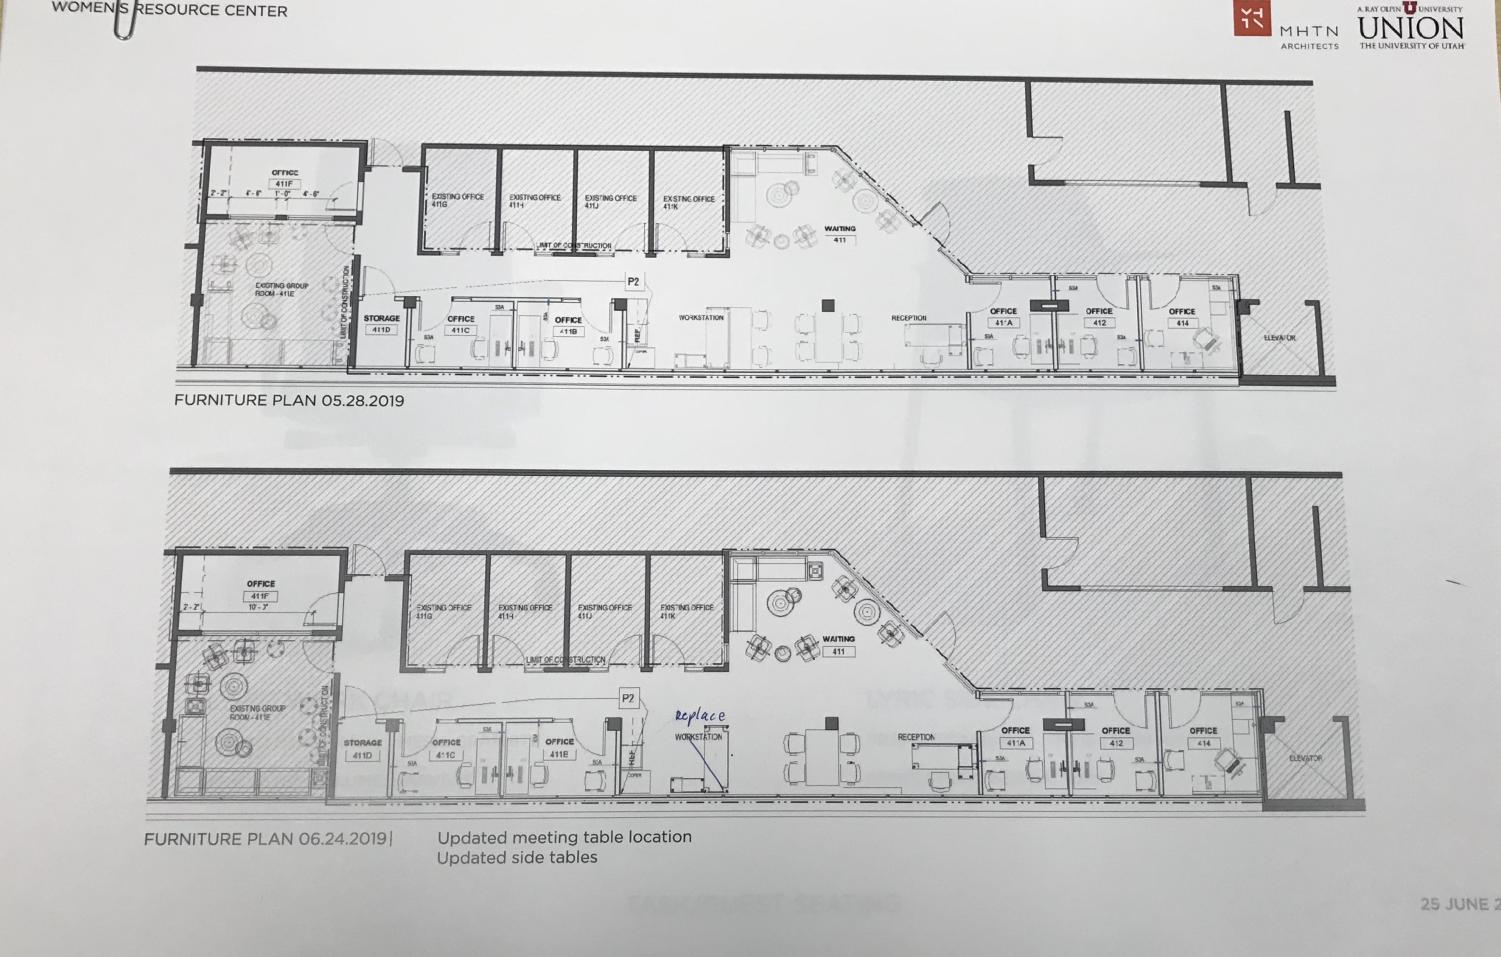 Floor plans for renovations. Photo Courtesy of Women's Resource Center